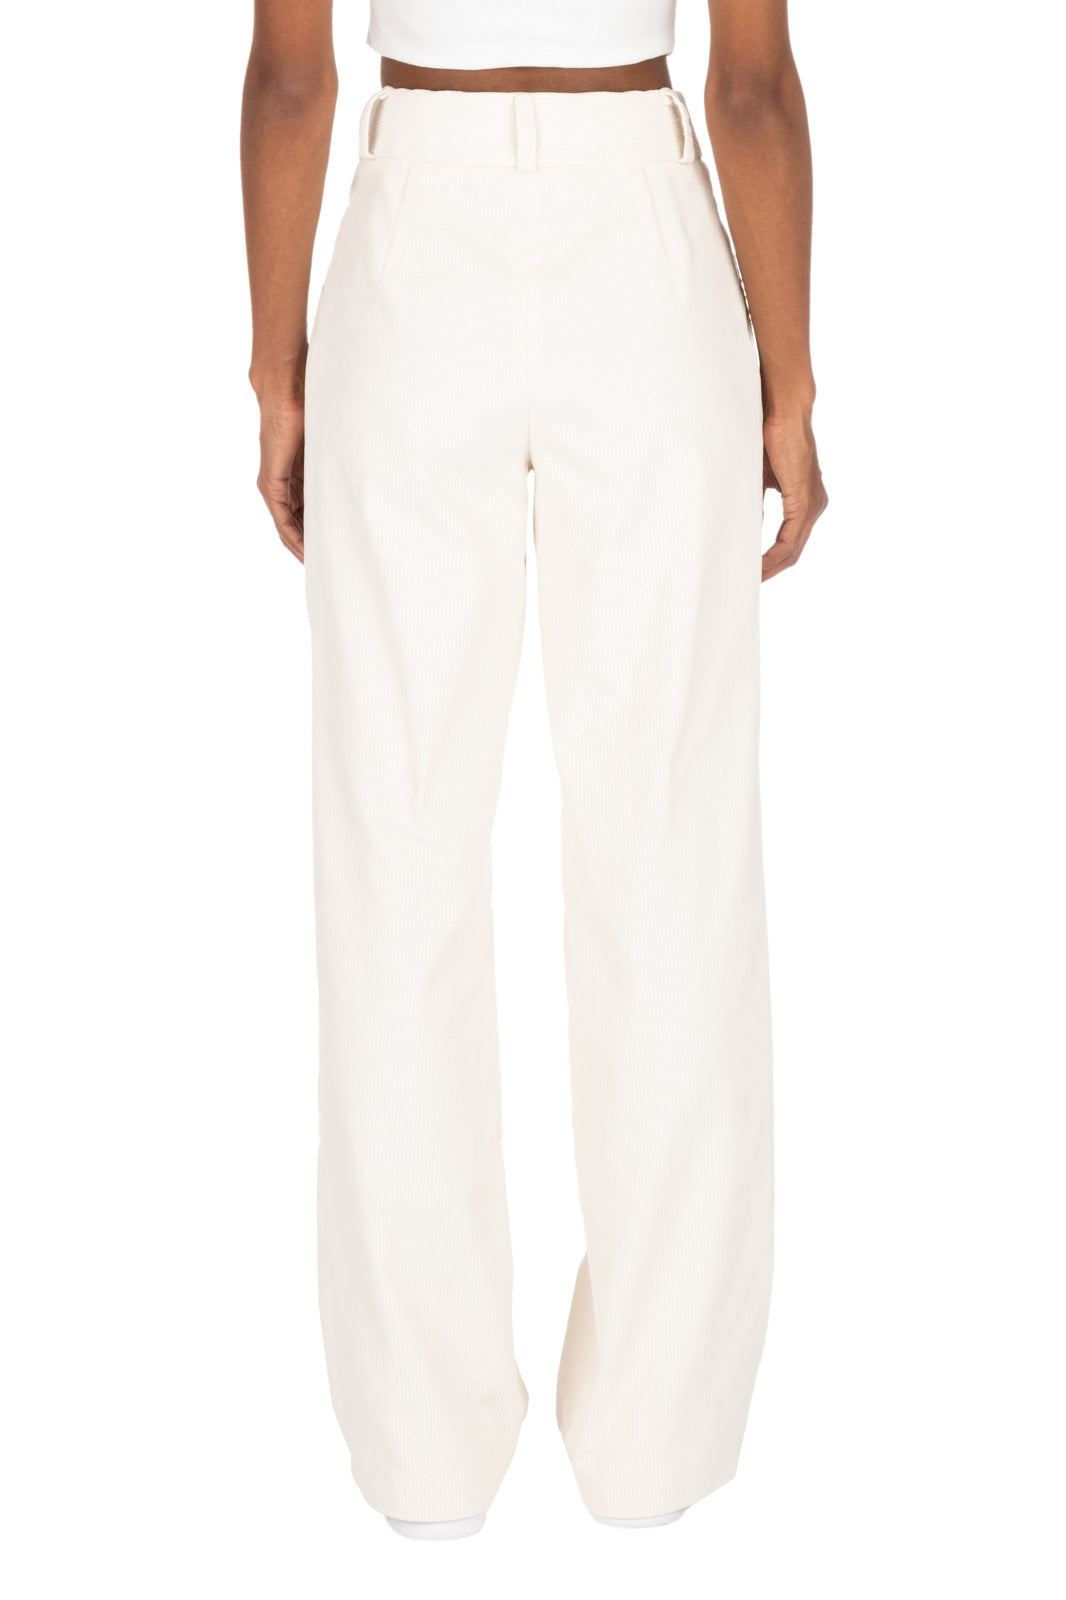 CORDUROY TROUSERS - Cream